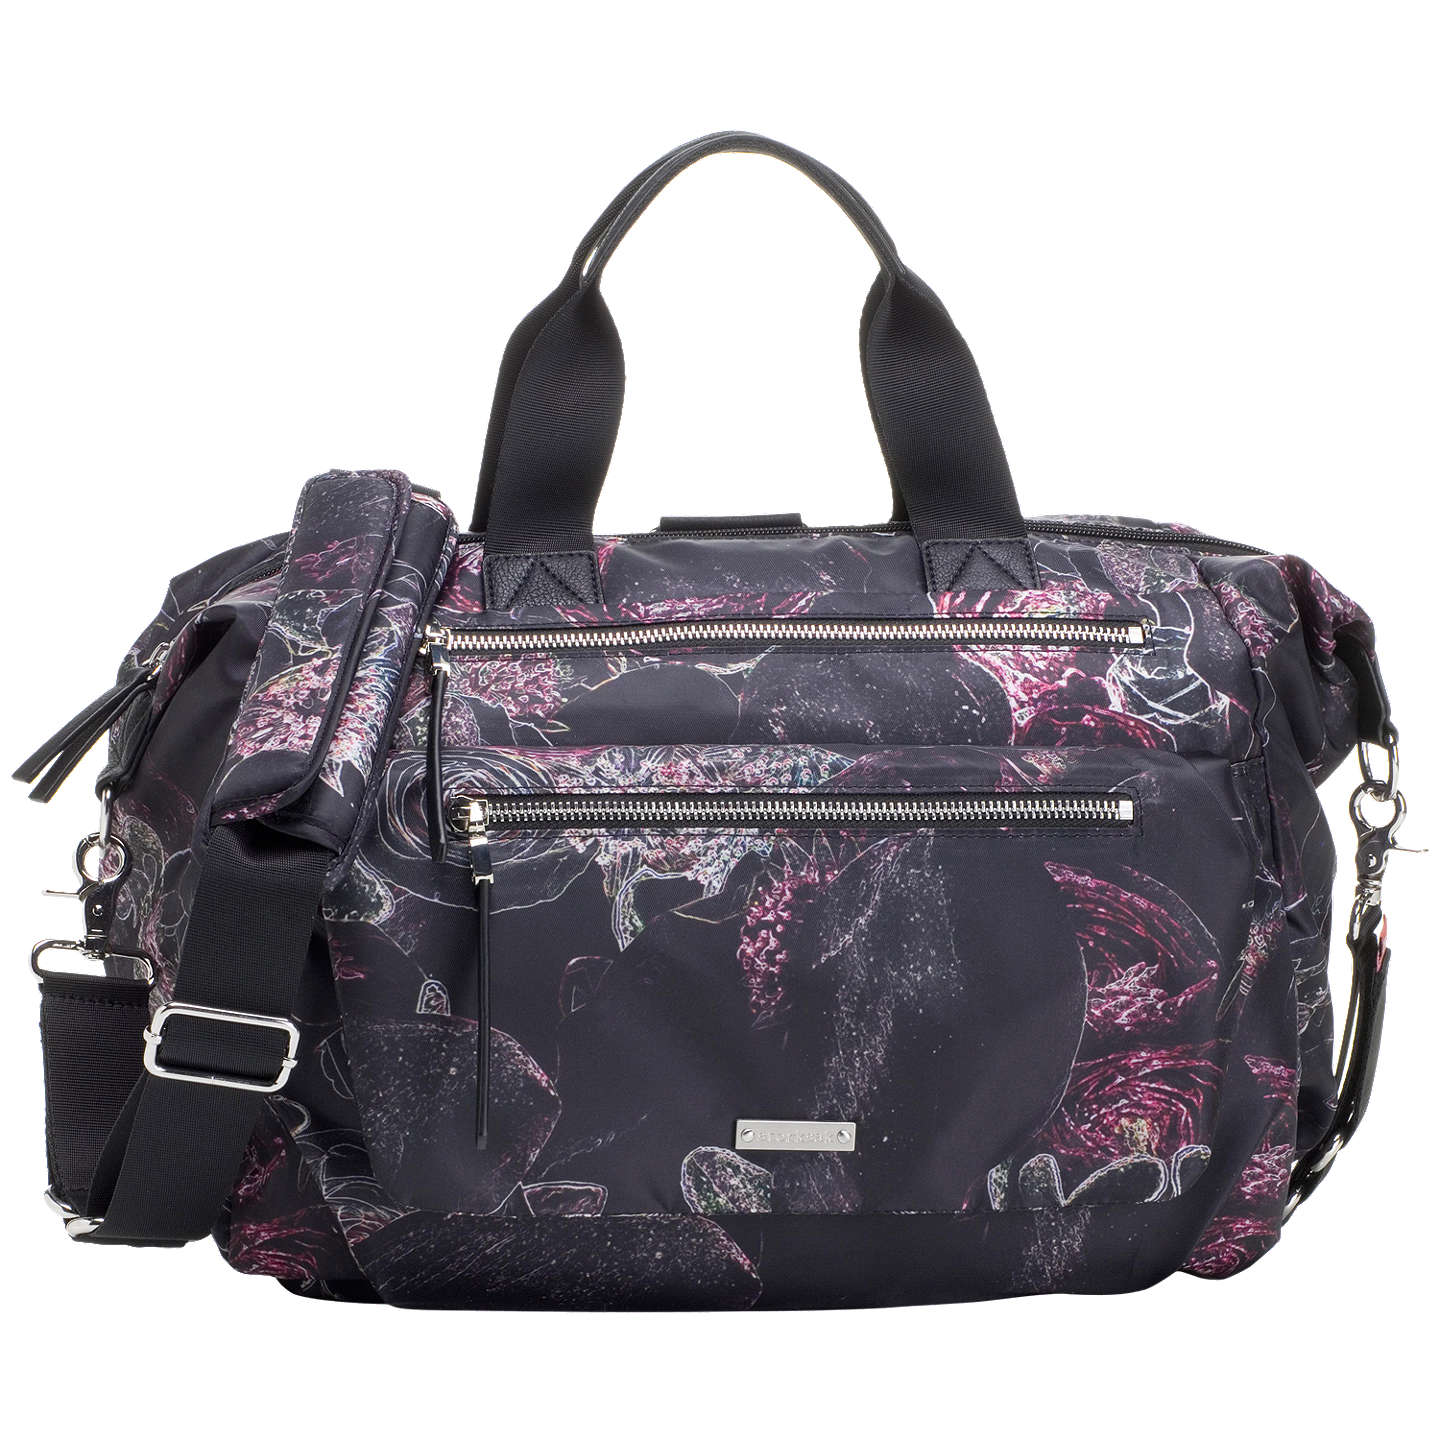 BuyStorksak Seren Convertible Floral Changing Bag, Black/Multi Online at johnlewis.com